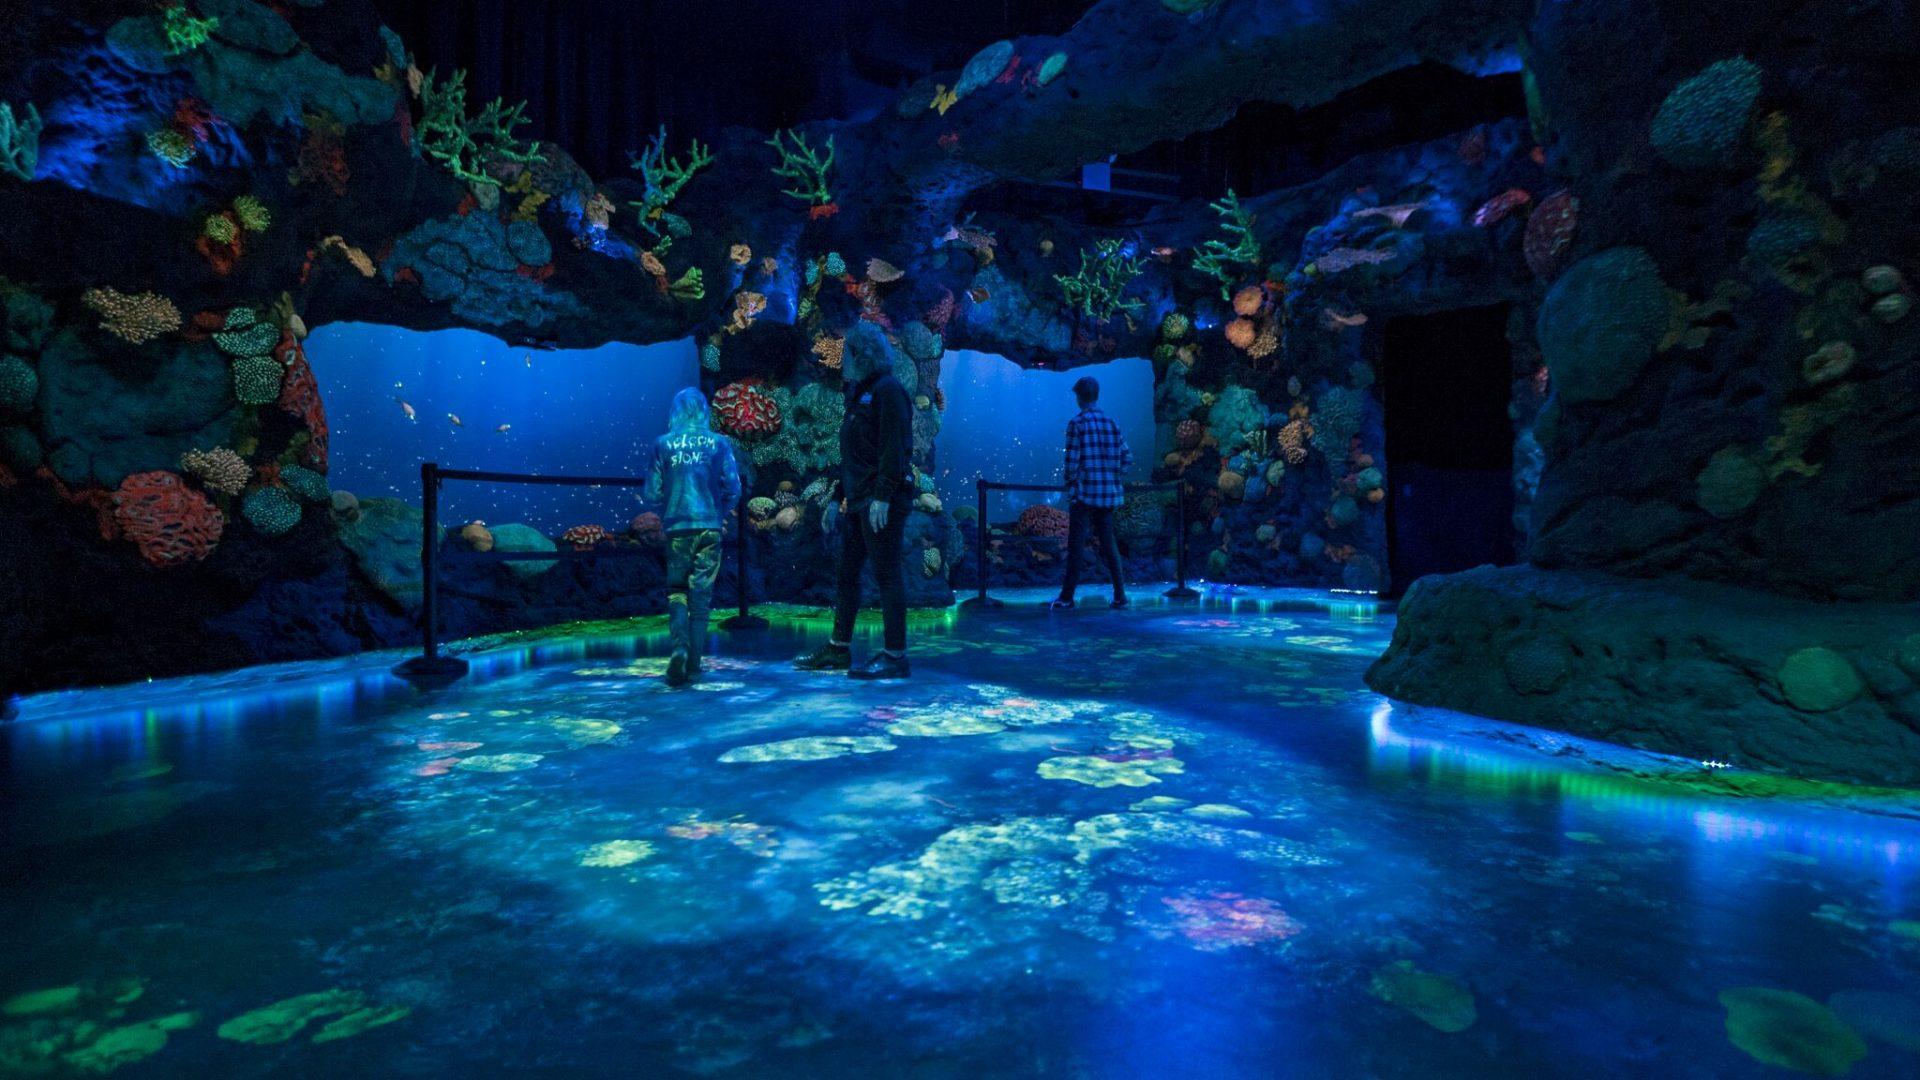 Interactive display showing coral reef at night